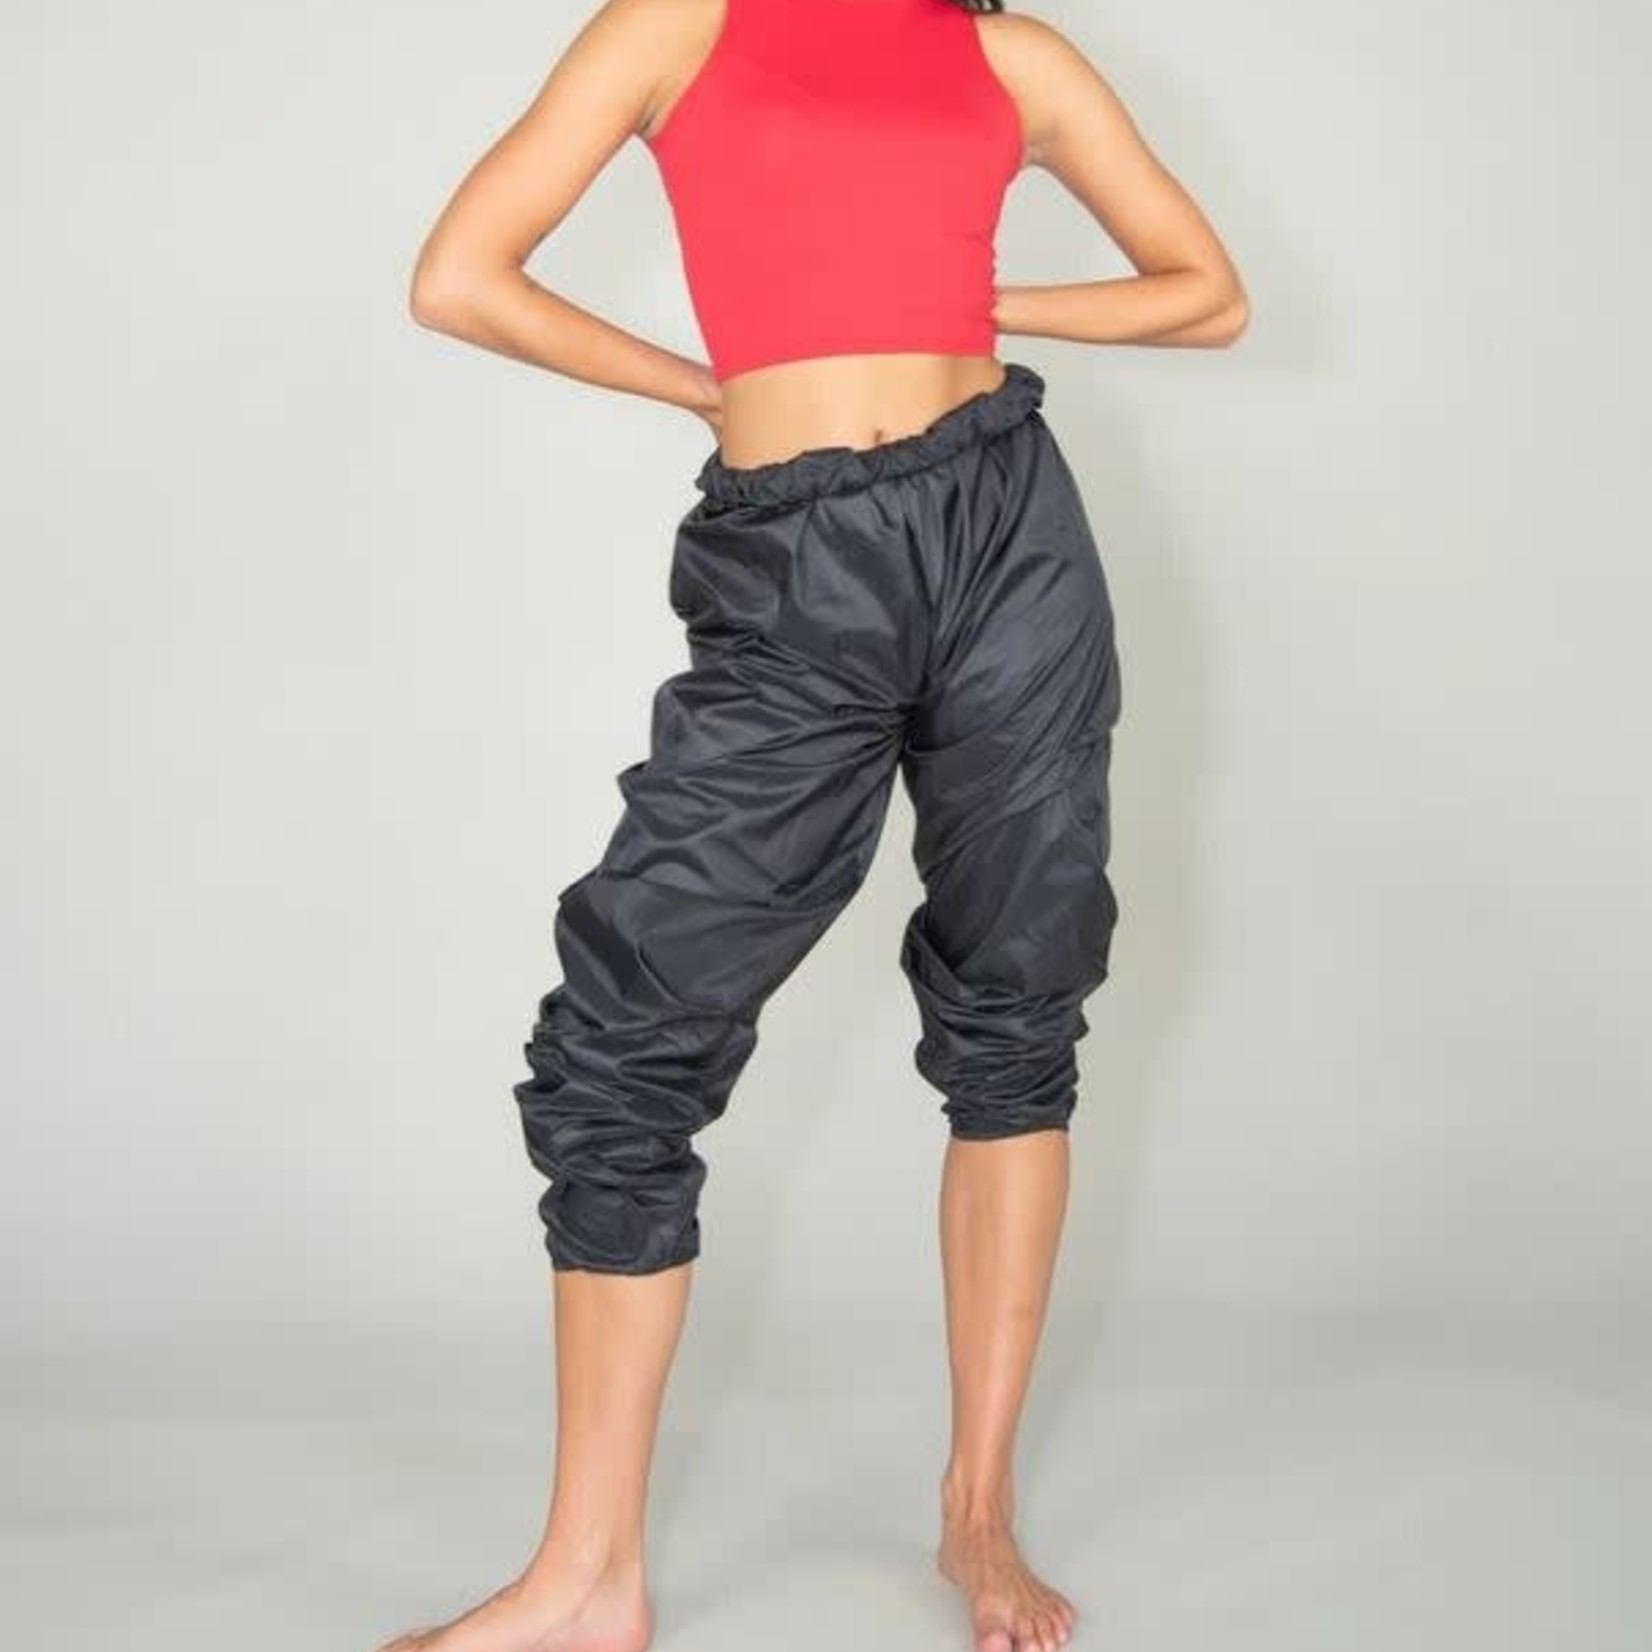 Body Wrappers Body Wrappers 071 Child Warm-up Pants